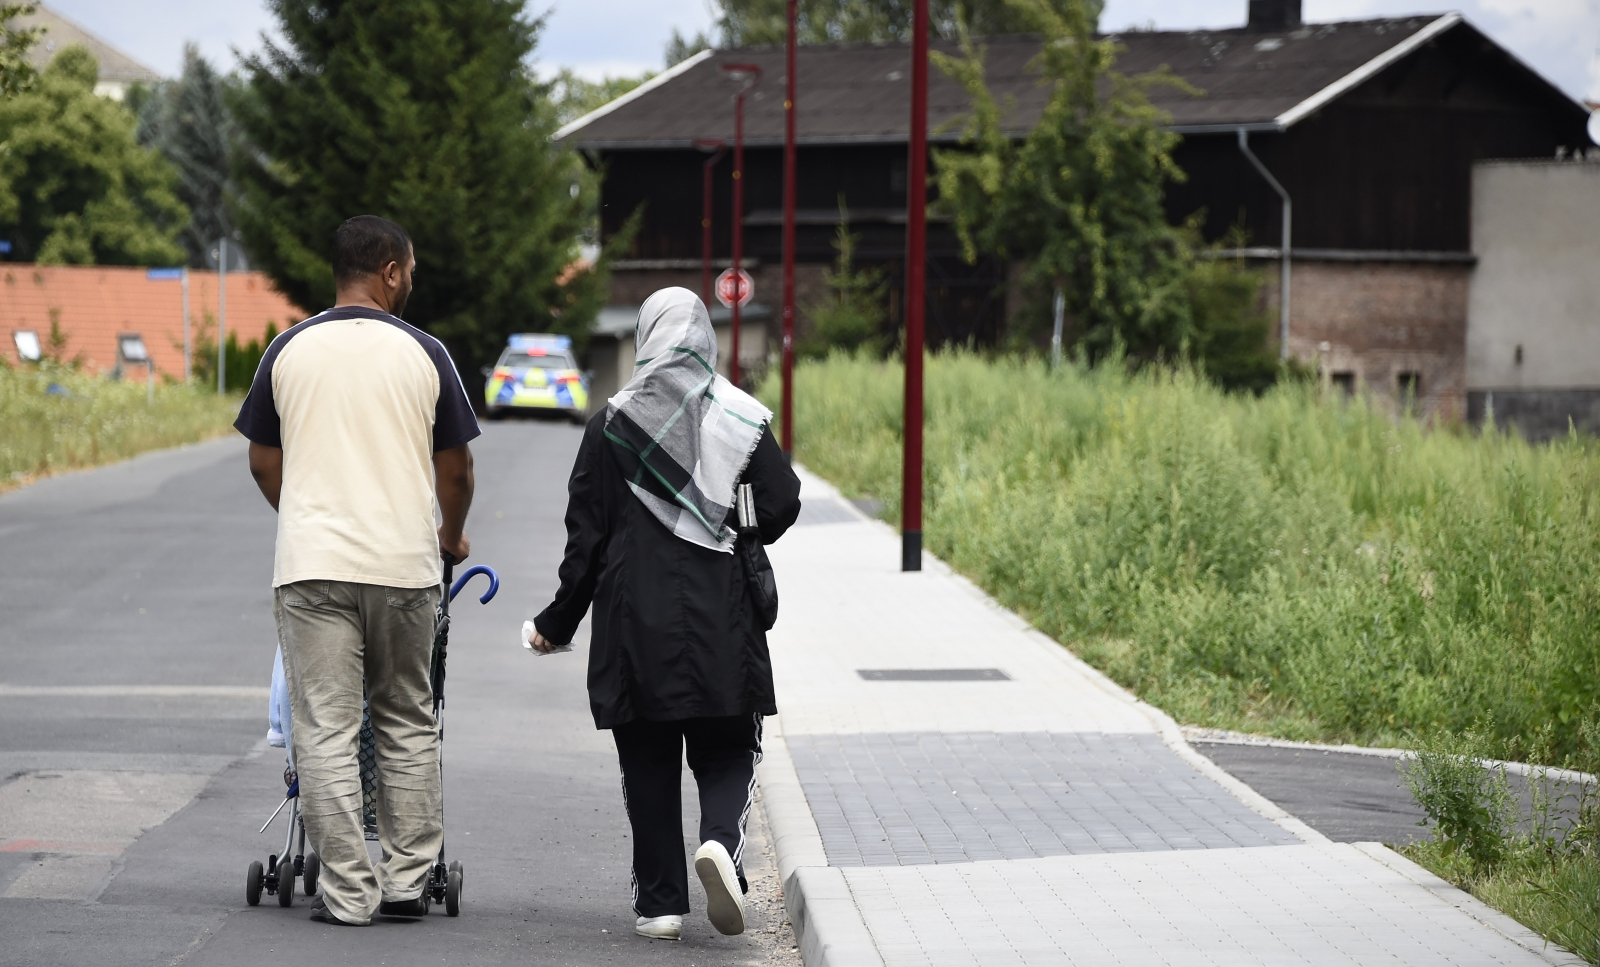 An immigrant couple in Freital